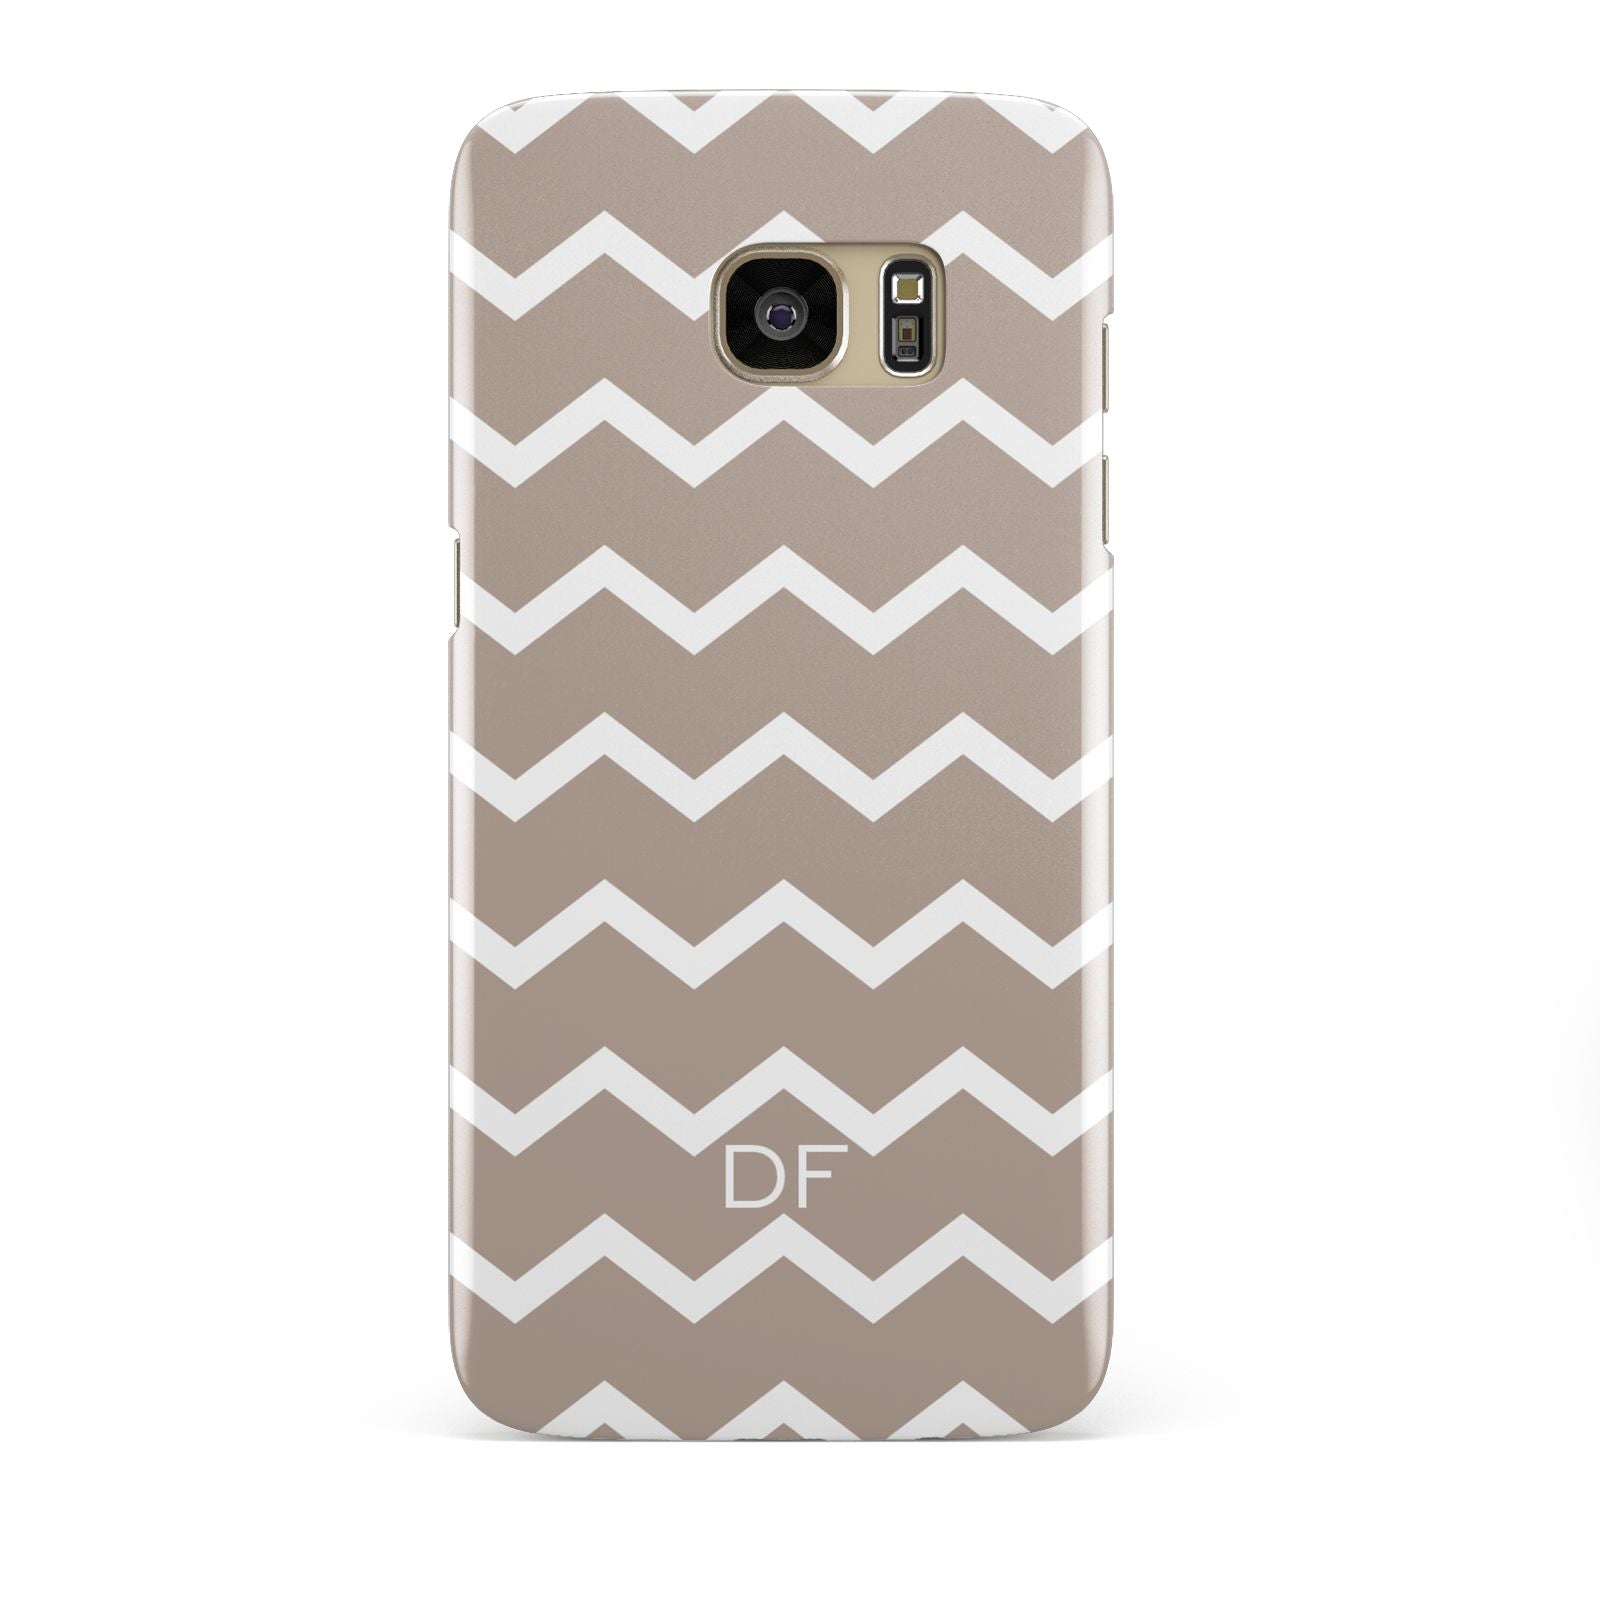 Personalised Chevron Beige Samsung Galaxy S7 Edge Case